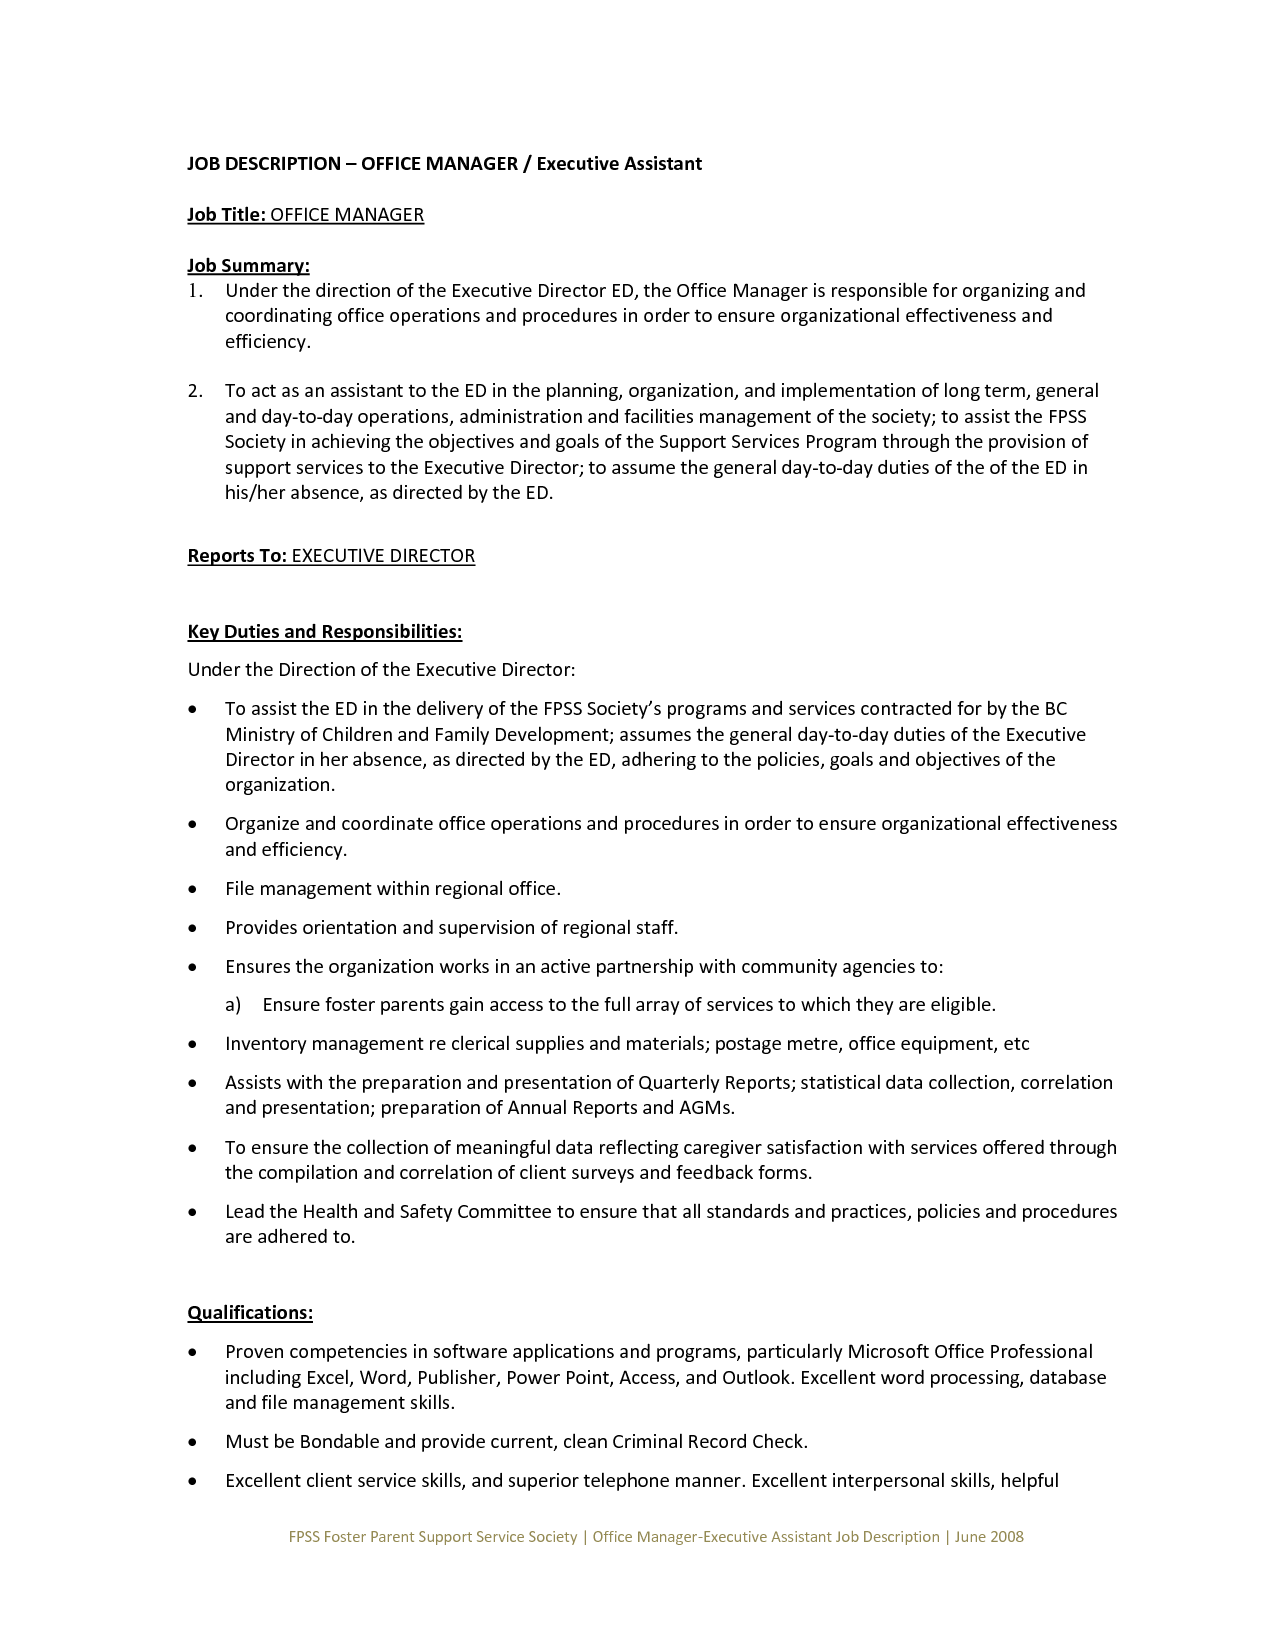 office assistant job description resume  resume office assistant job description office executive assistant key duties and responsibilities resume